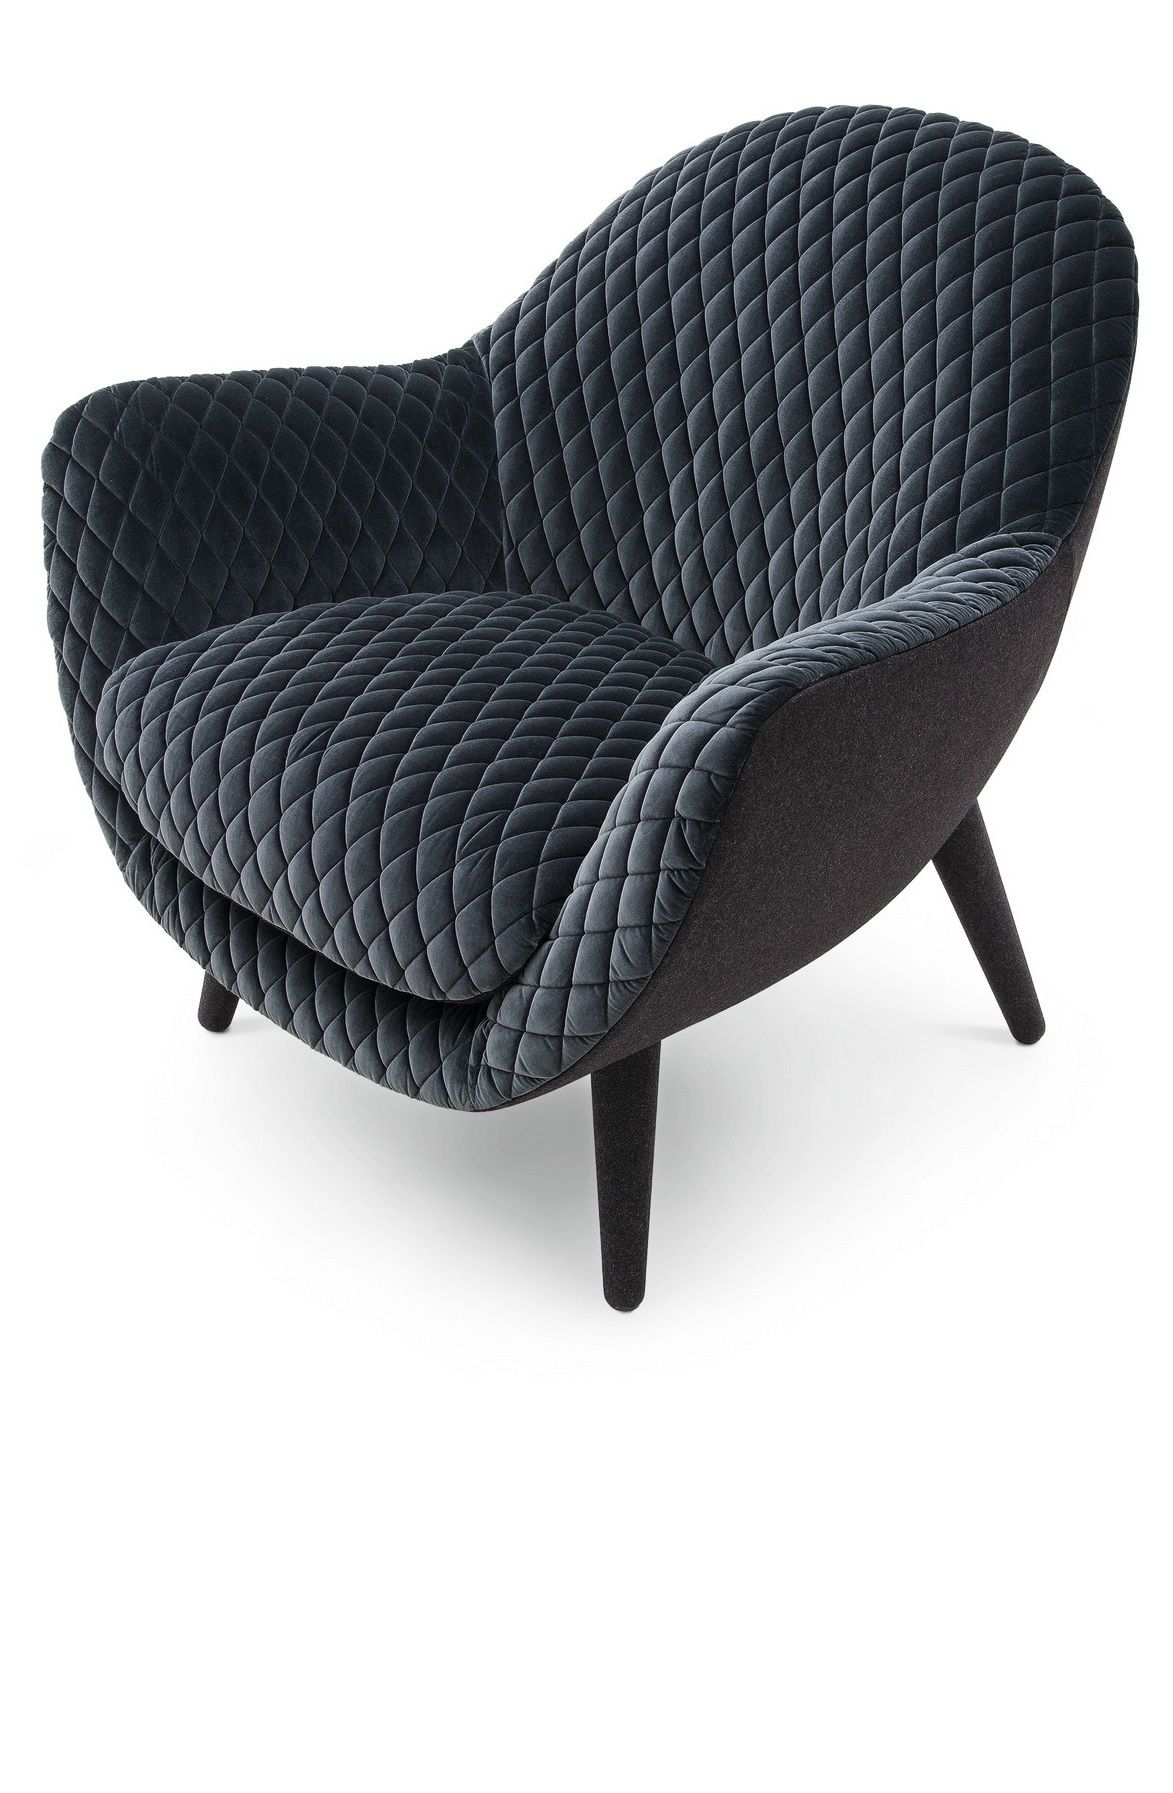 Mad queen chair by marcel wanders for poliform in for Marcel wanders stuhl